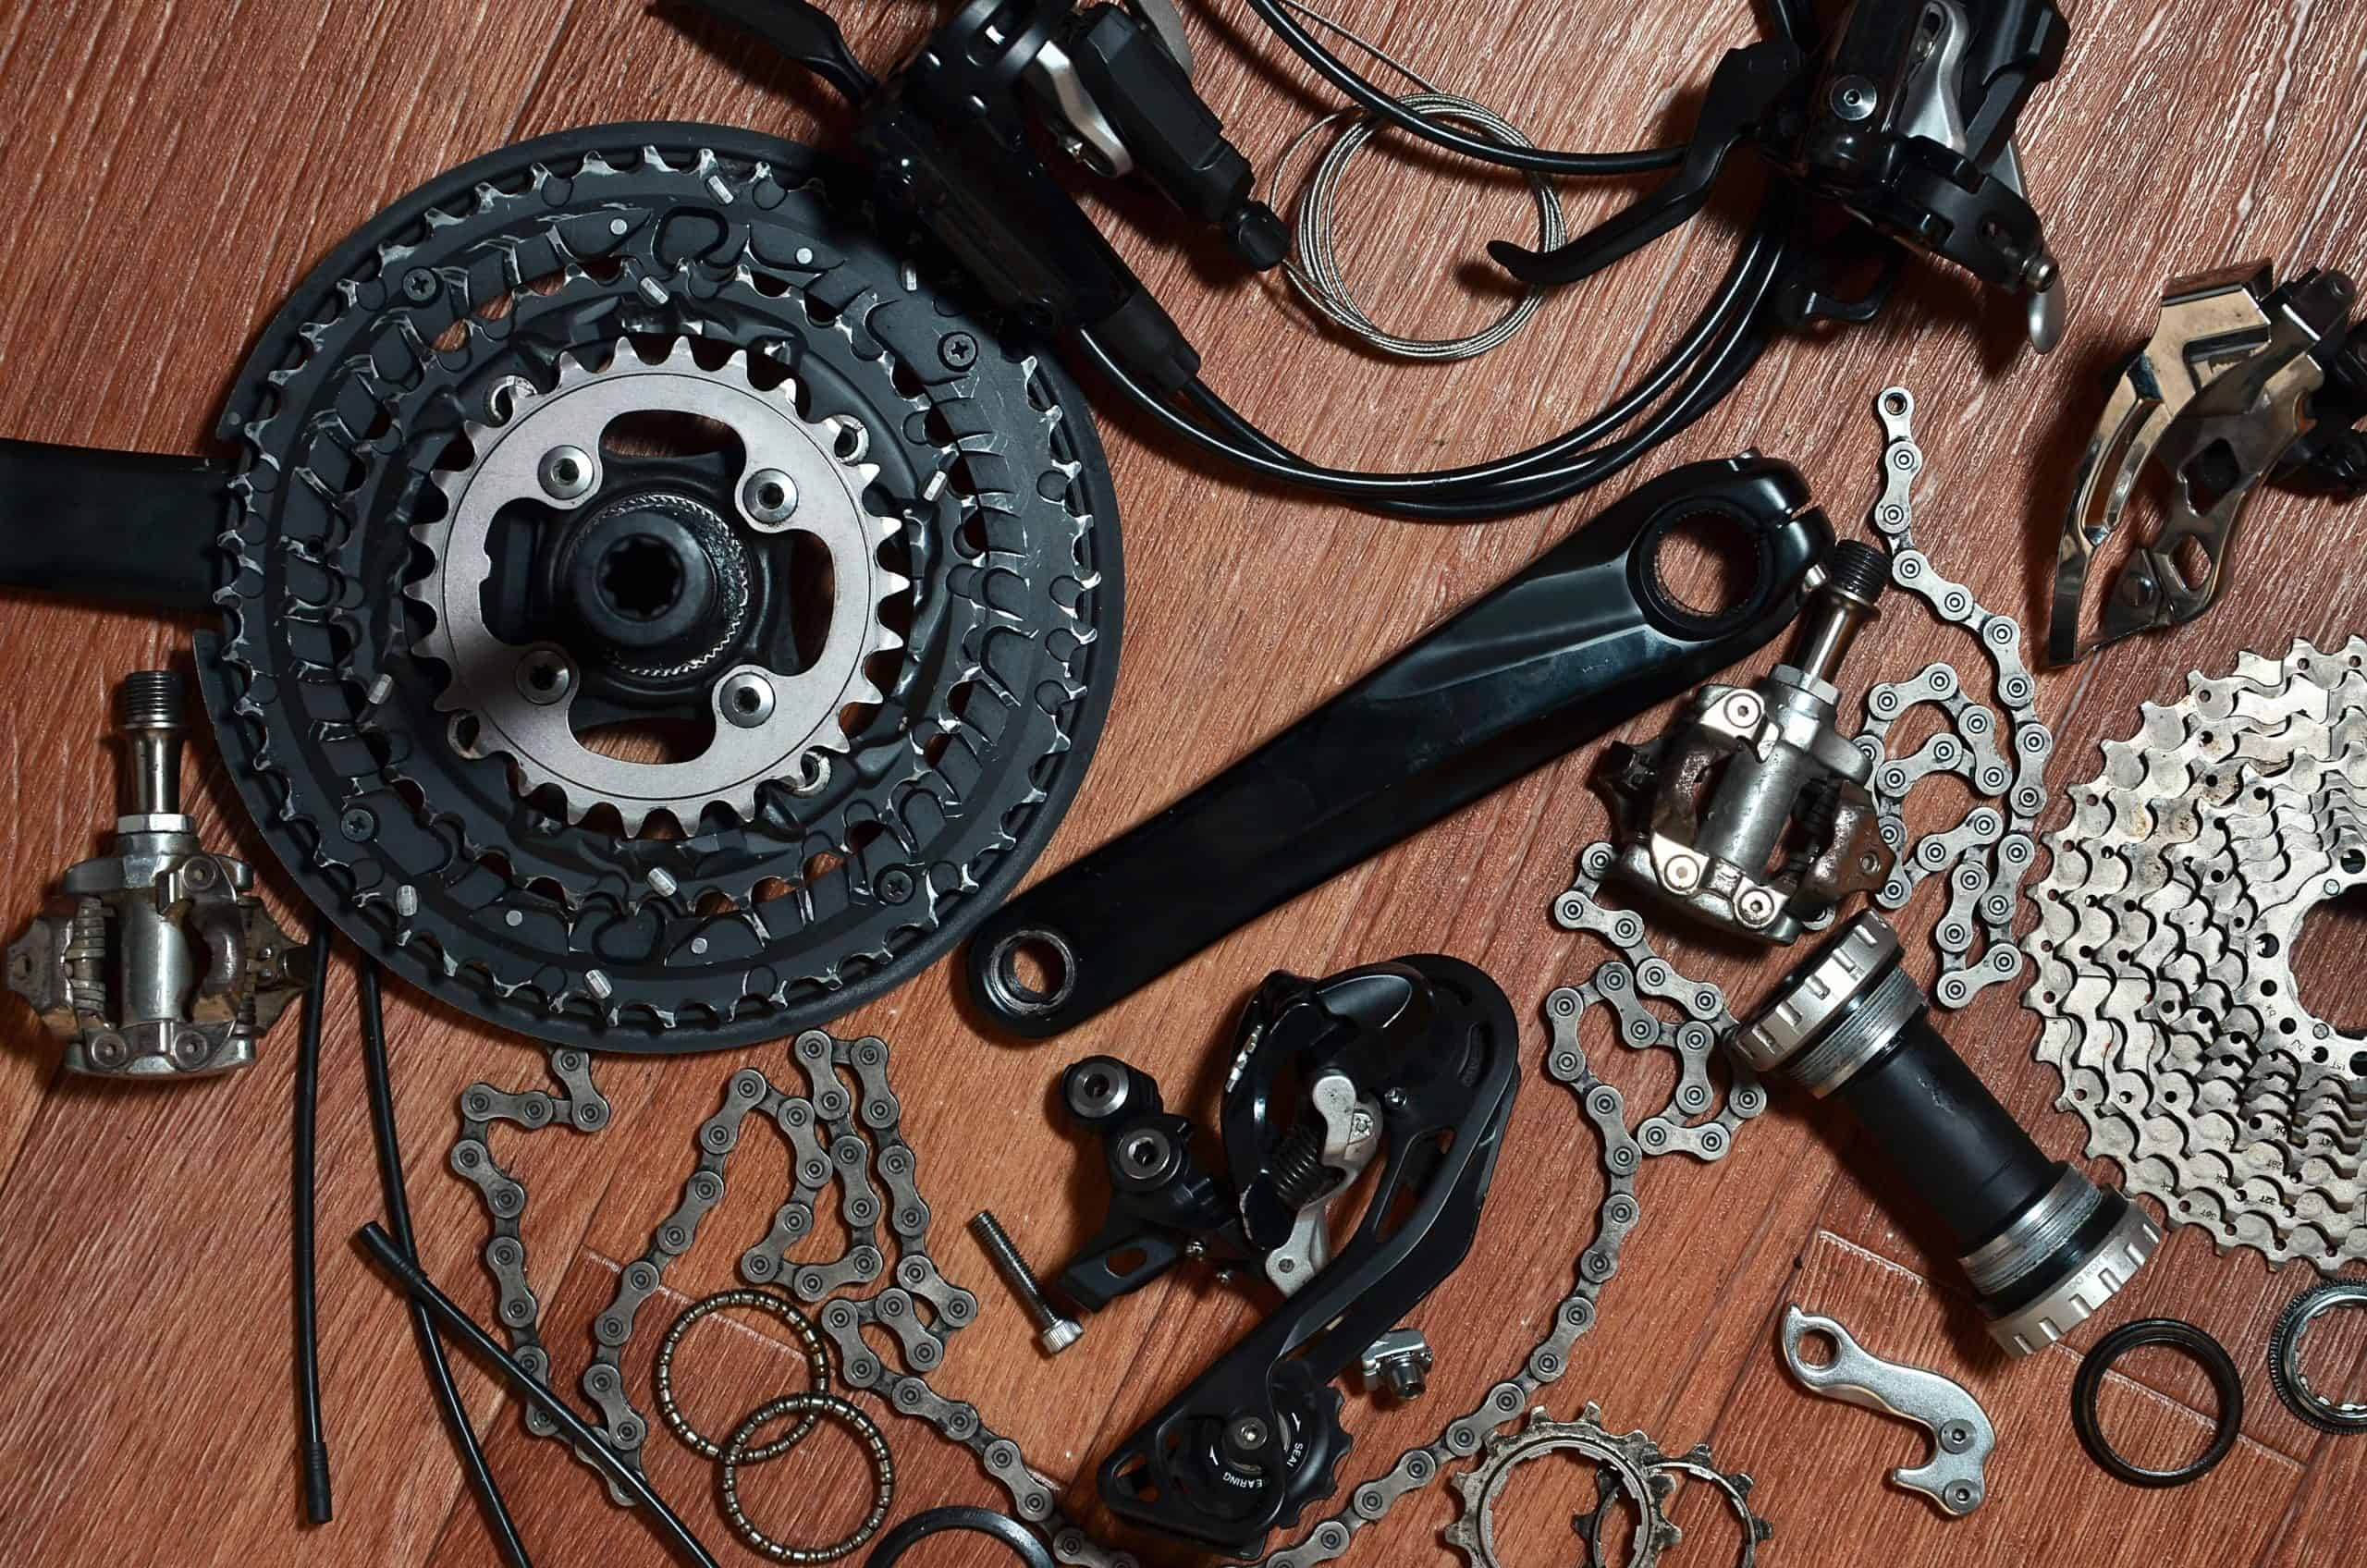 Components of a Bicycle